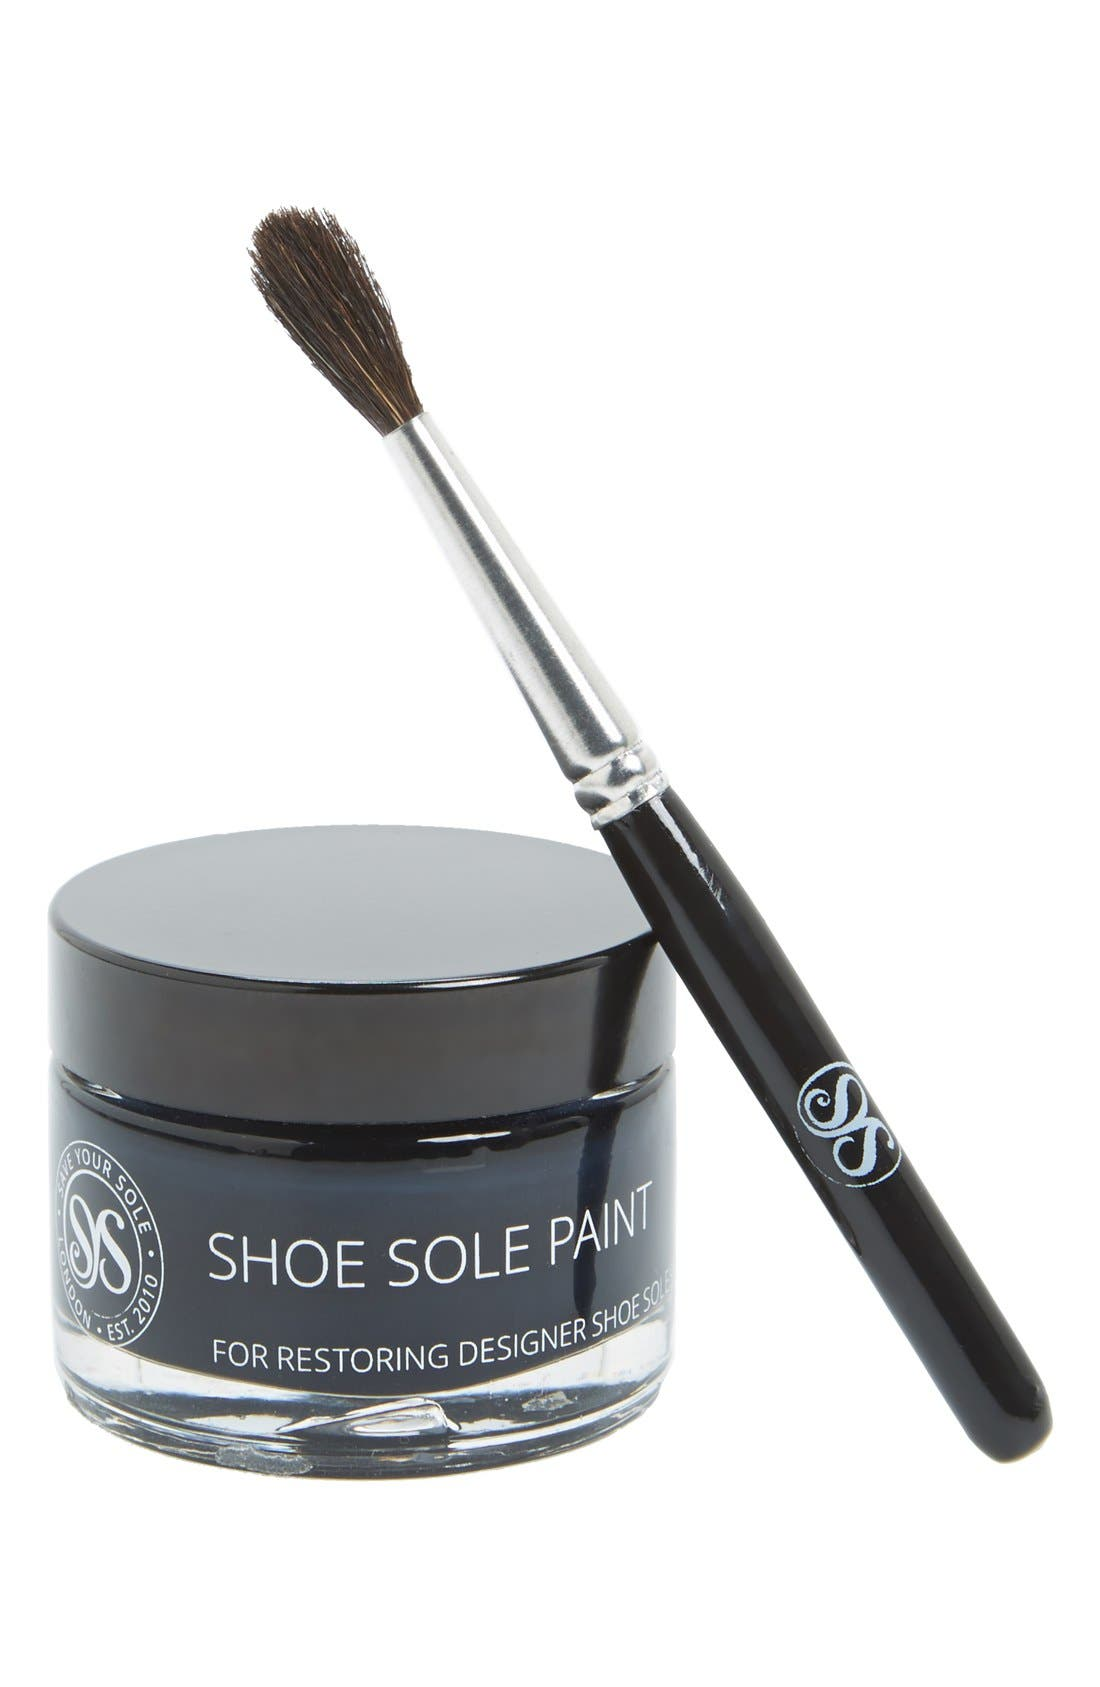 Save Your Sole Sole Repair Paint Kit